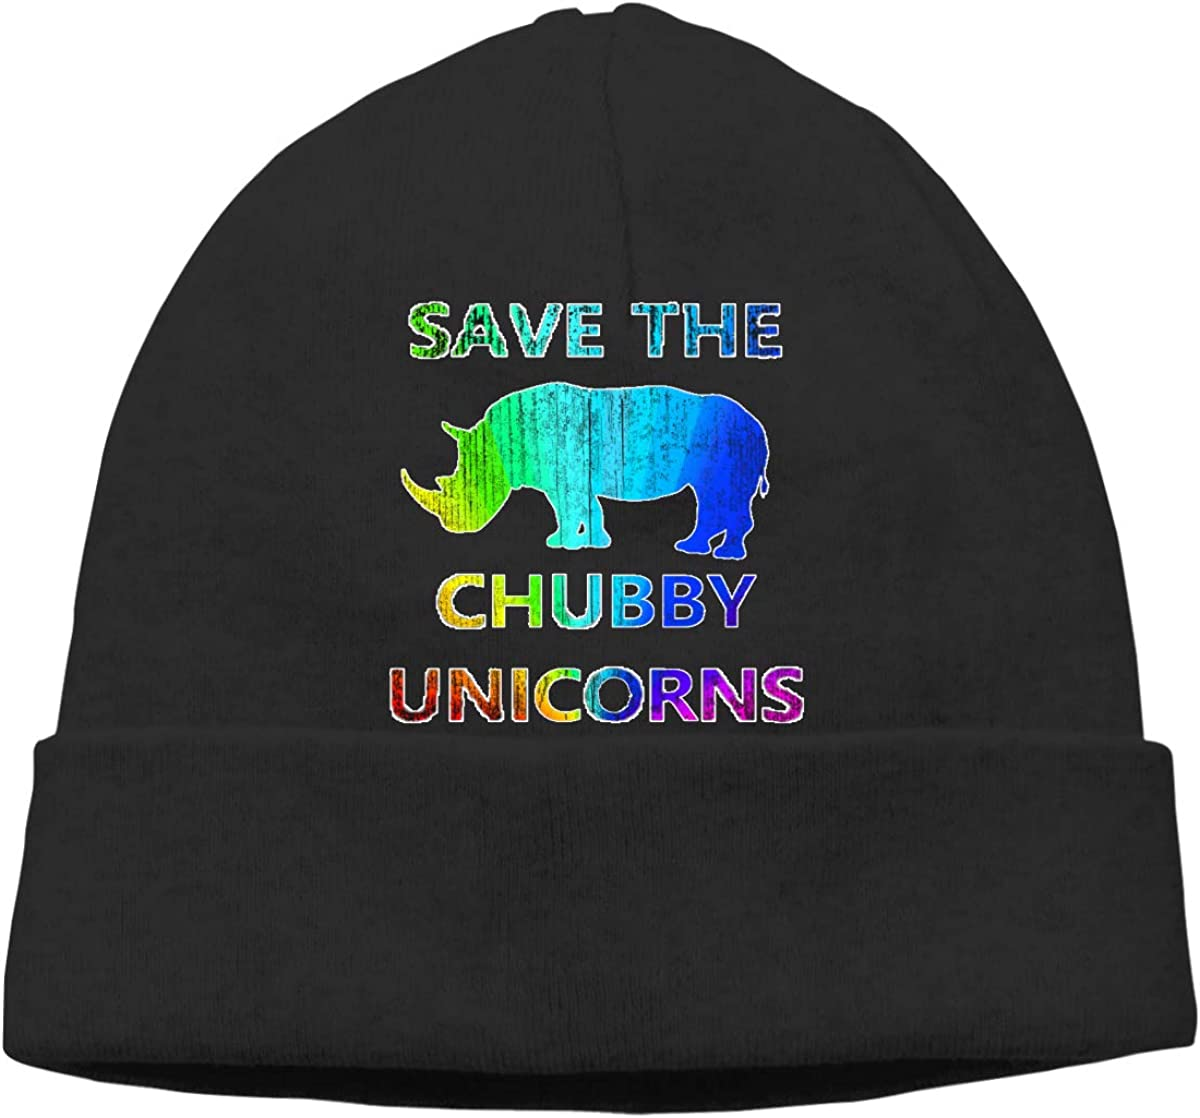 Save The Chubby Unicorns Warm Winter Hat Knit Beanie Skull Cap Cuff Beanie Hat Winter Hats for Men /& Women